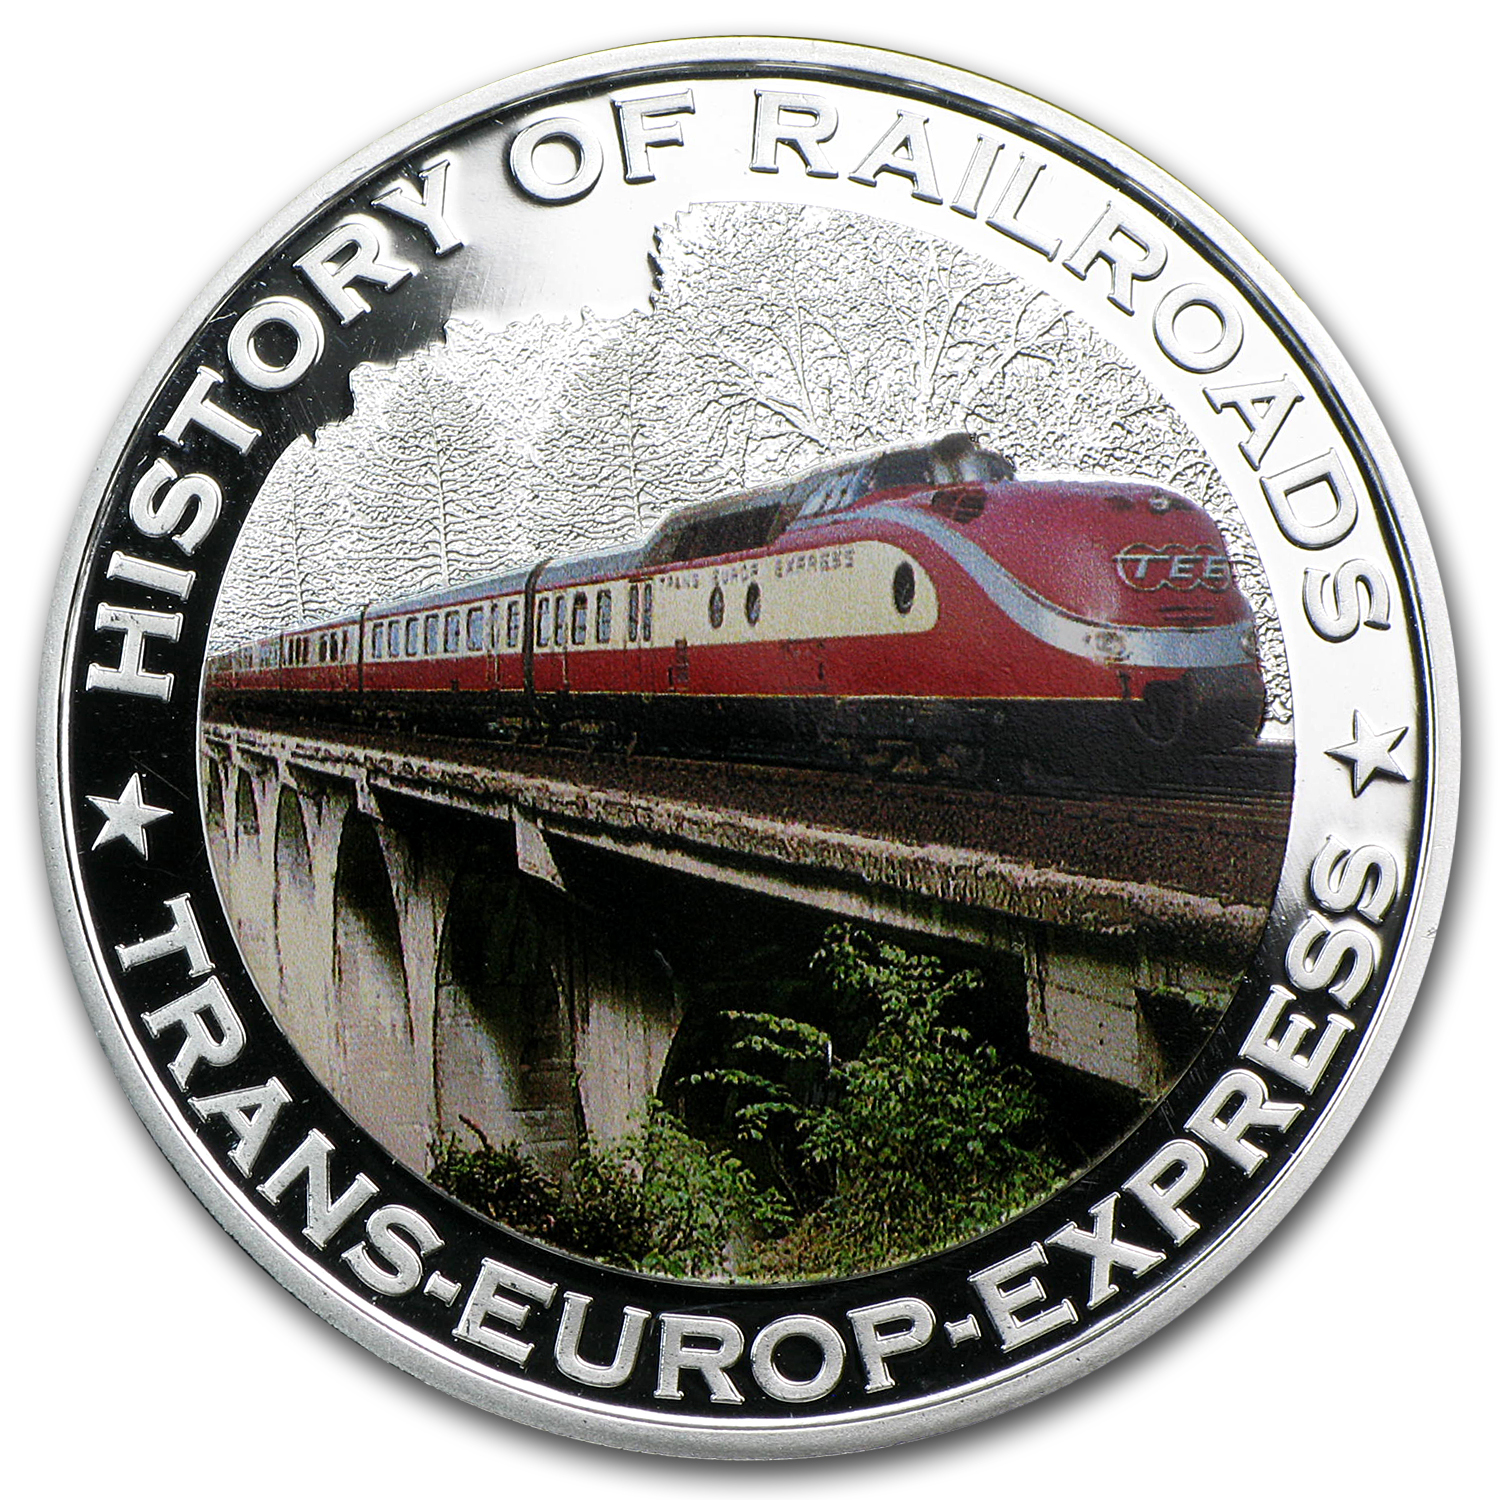 2011 Liberia Silver $5 Trans-Europe Express Proof